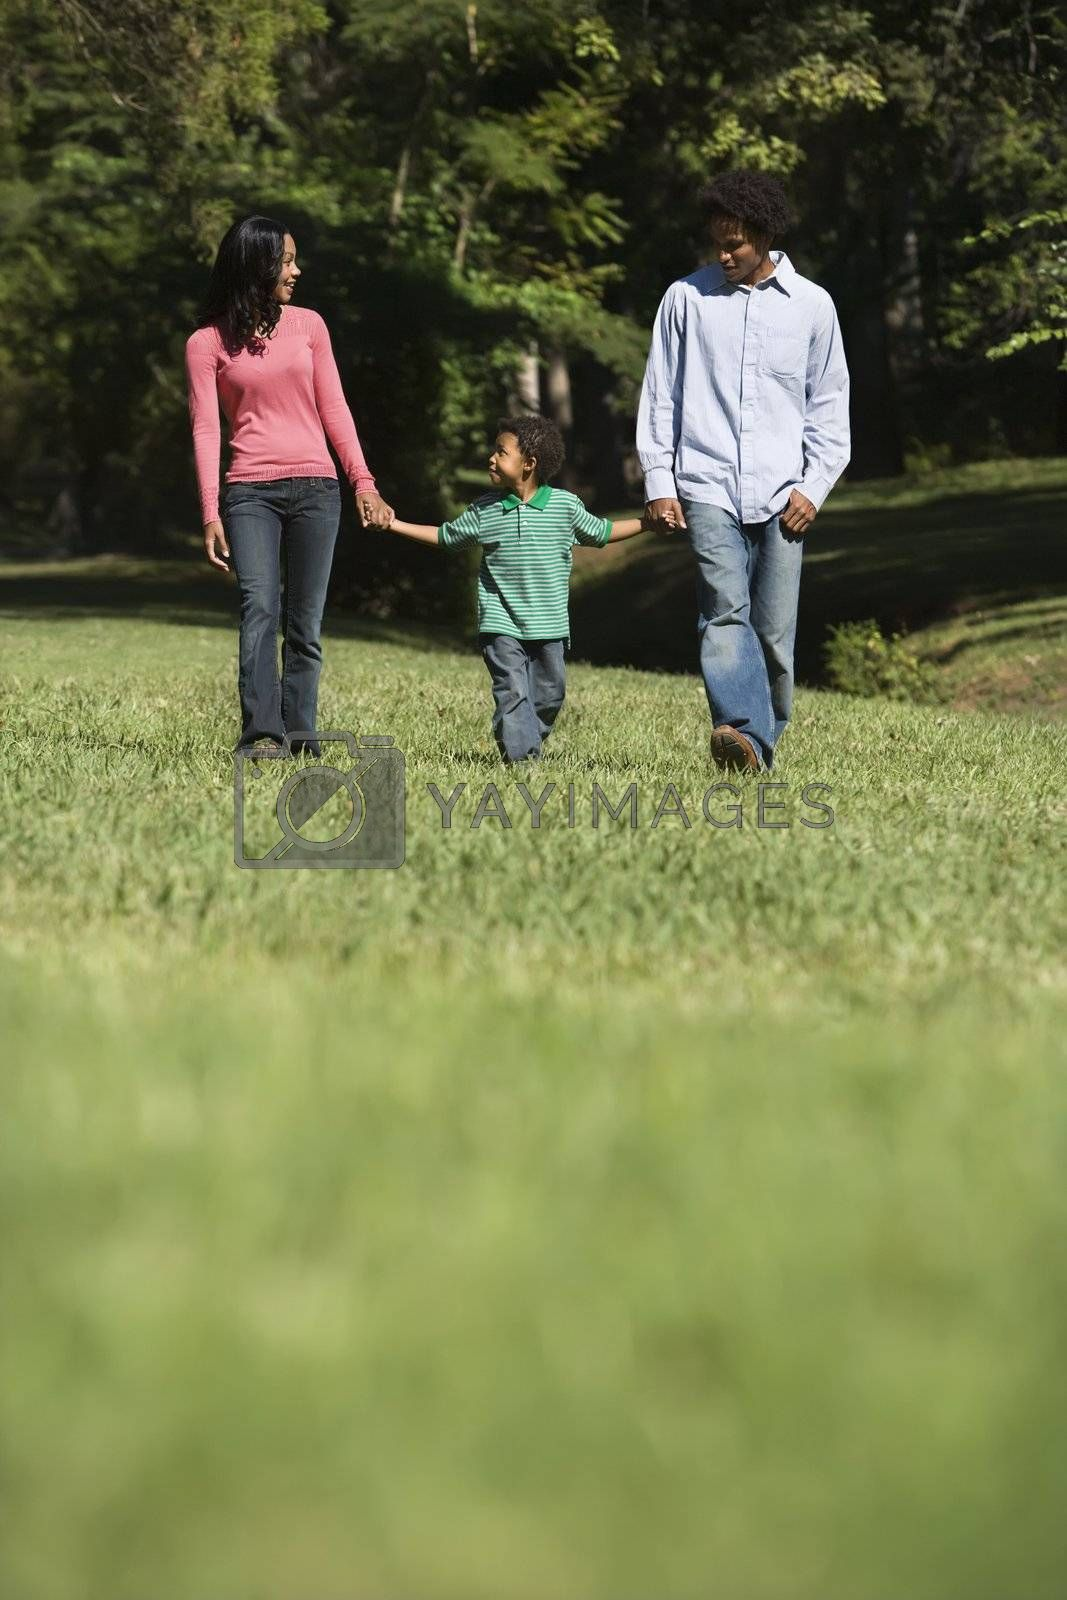 Parents and young son walking in park holding hands.